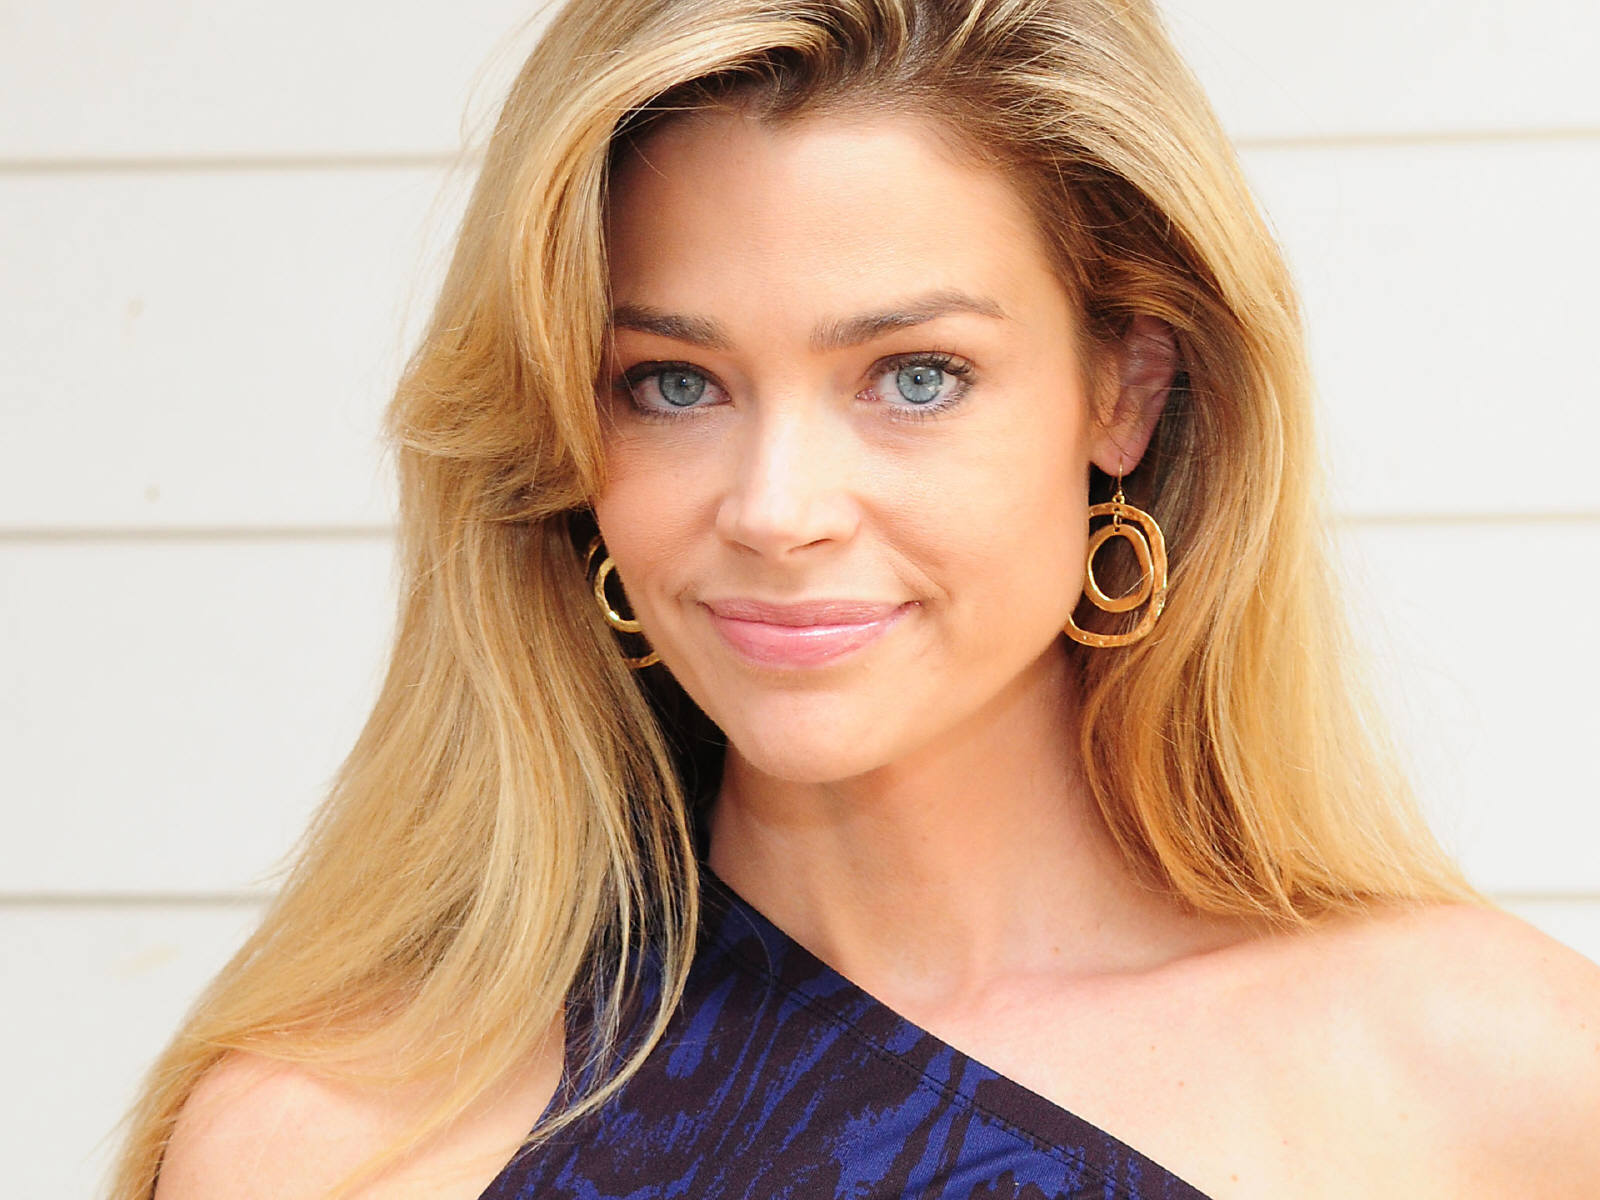 http://1.bp.blogspot.com/-yoDY4QSdnB0/UH1XRbe7AII/AAAAAAAABBk/oWg4mcFUZV0/s1600/Denise_Richards_0116_1600X1200_Wallpaper.jpg